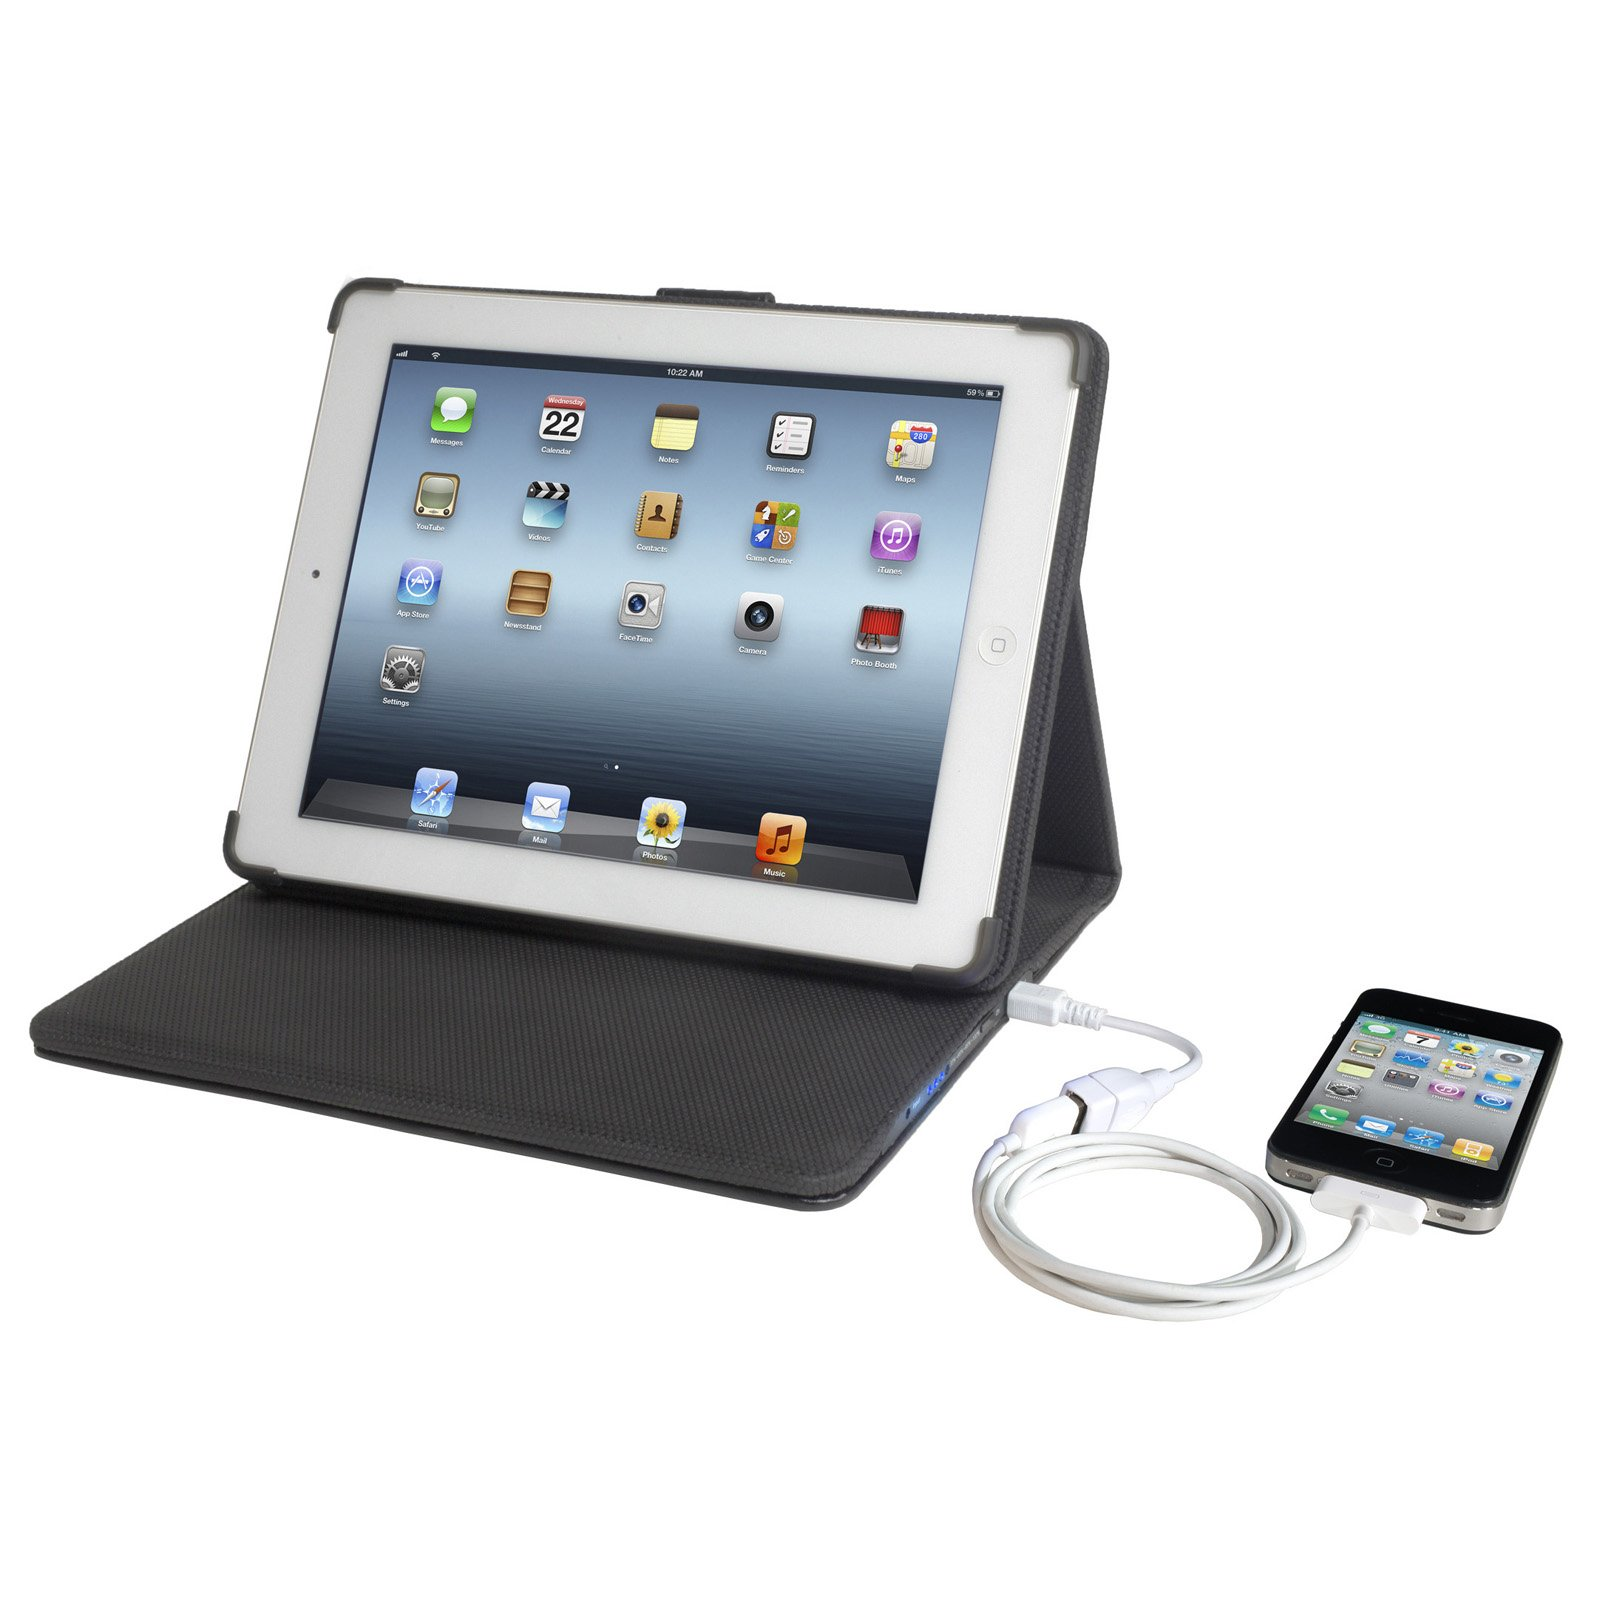 PCT Brands Props 12,000mAh Power Folio Case for iPad 2 by PCT Brands (Image #2)